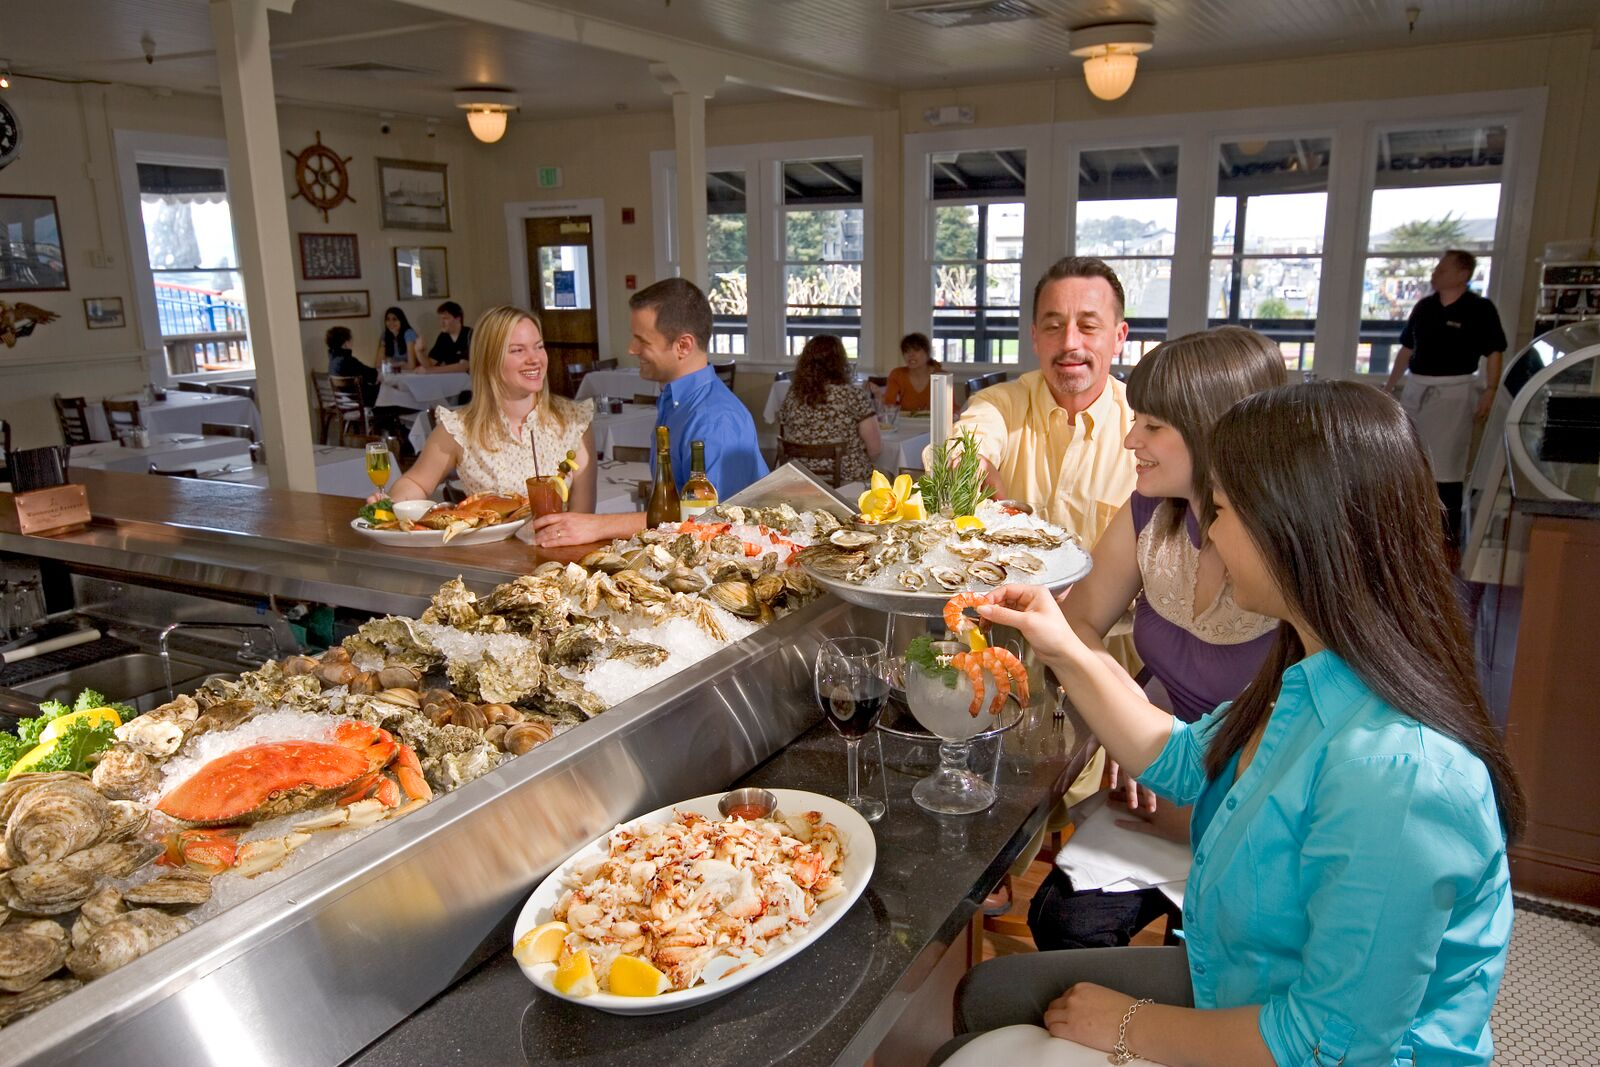 Raw Seafood Platter with Oysters, Clams, Shrimp Cocktail and Dungeness Crab